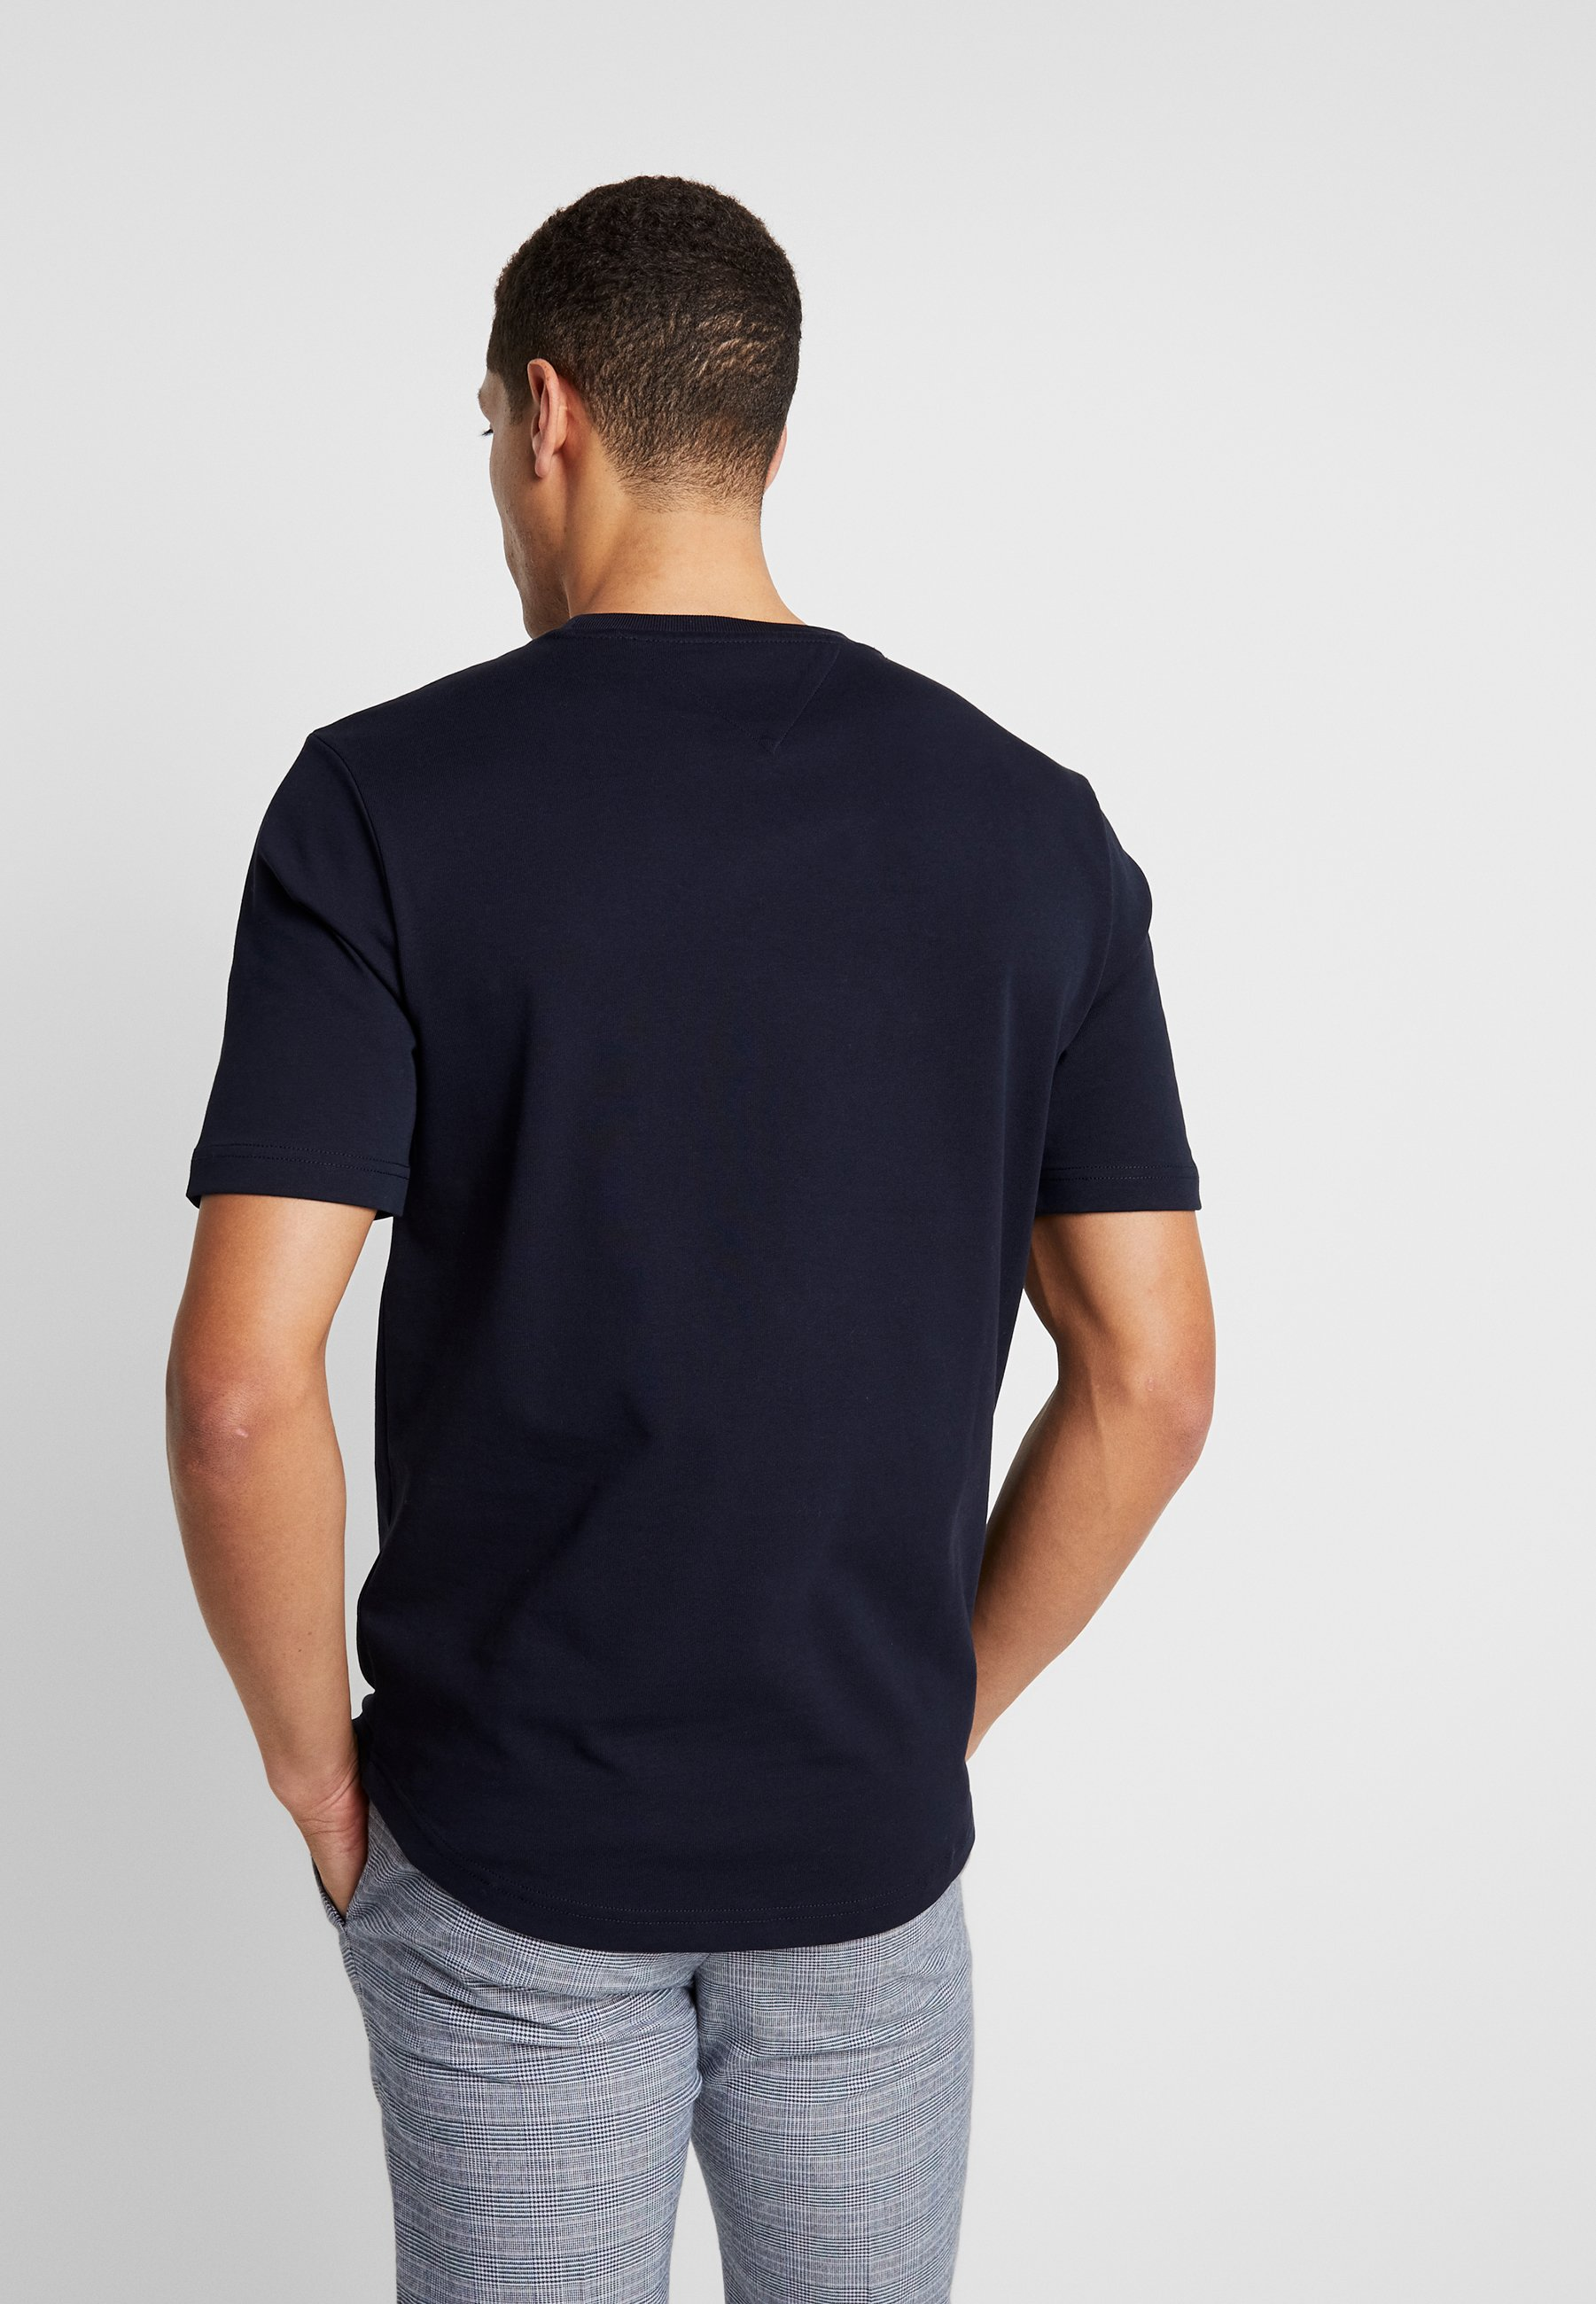 Tommy Hilfiger Arch Relaxed Fit Tee - T-shirt Med Print Blue